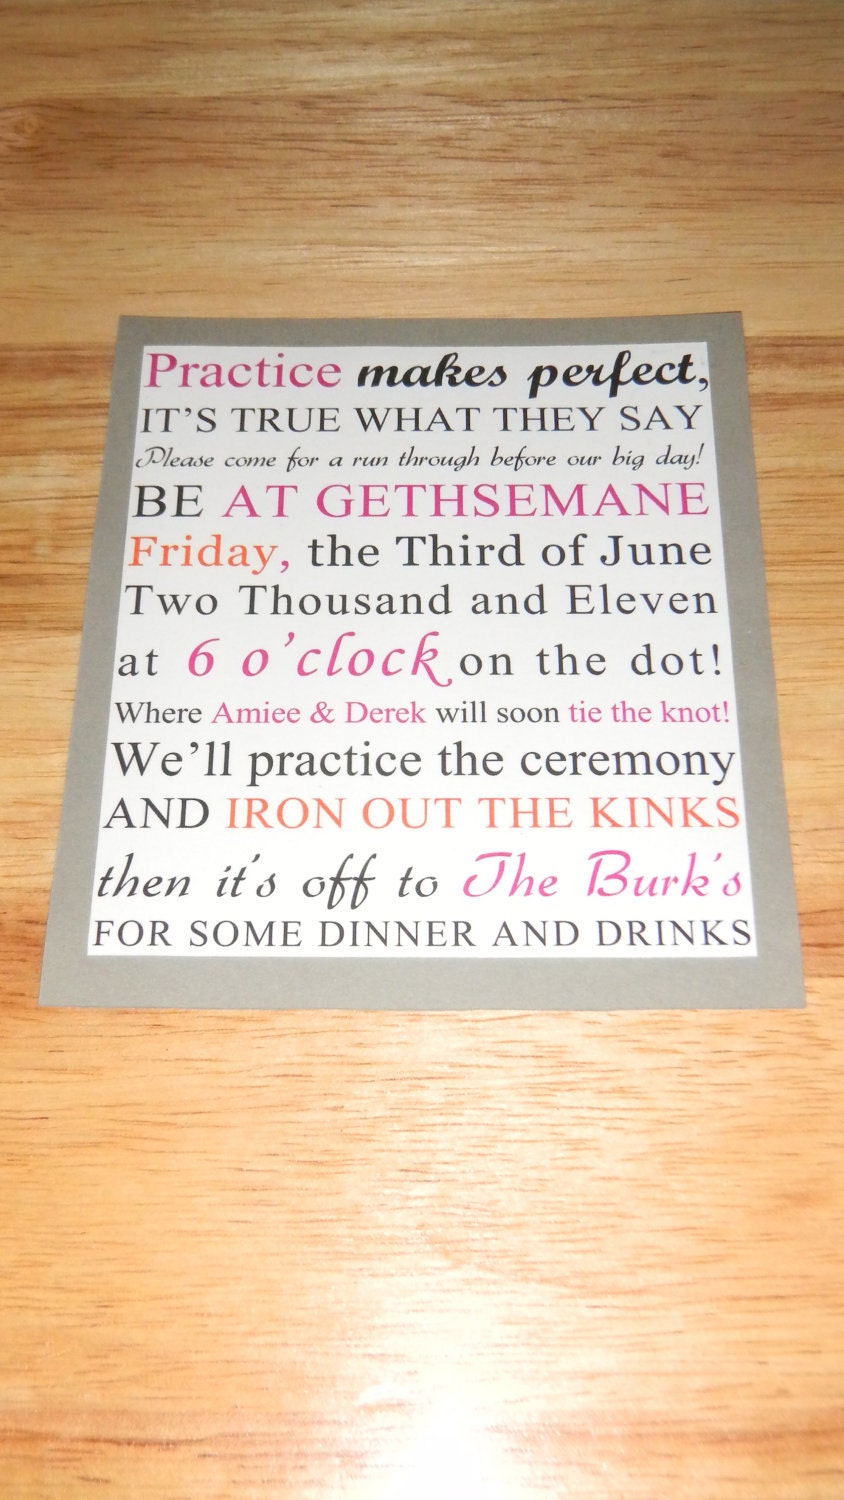 Rehearsal Dinner Invitations Etsy could be nice ideas for your invitation template